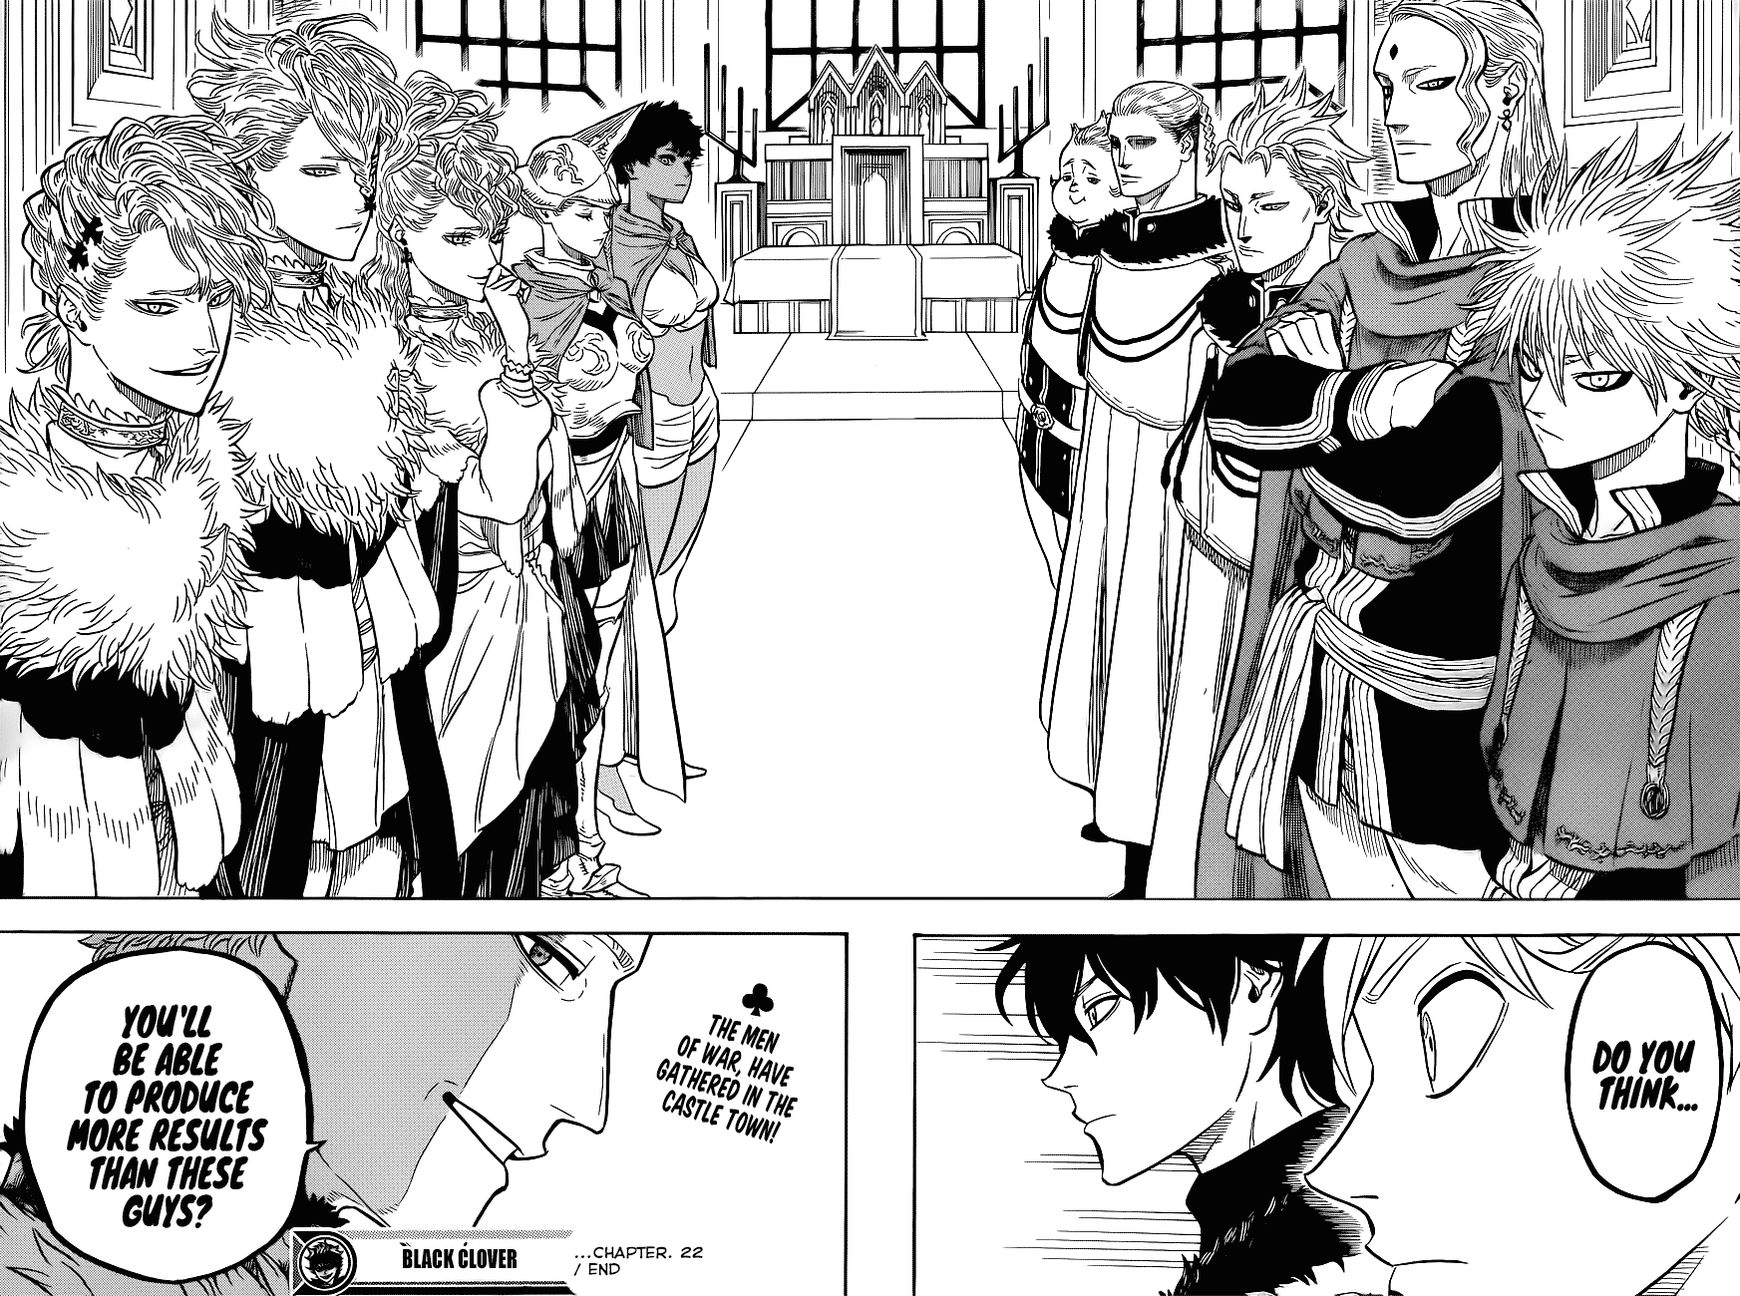 Black Clover, Chapter 22 Gathering At The Kings Palace image 018